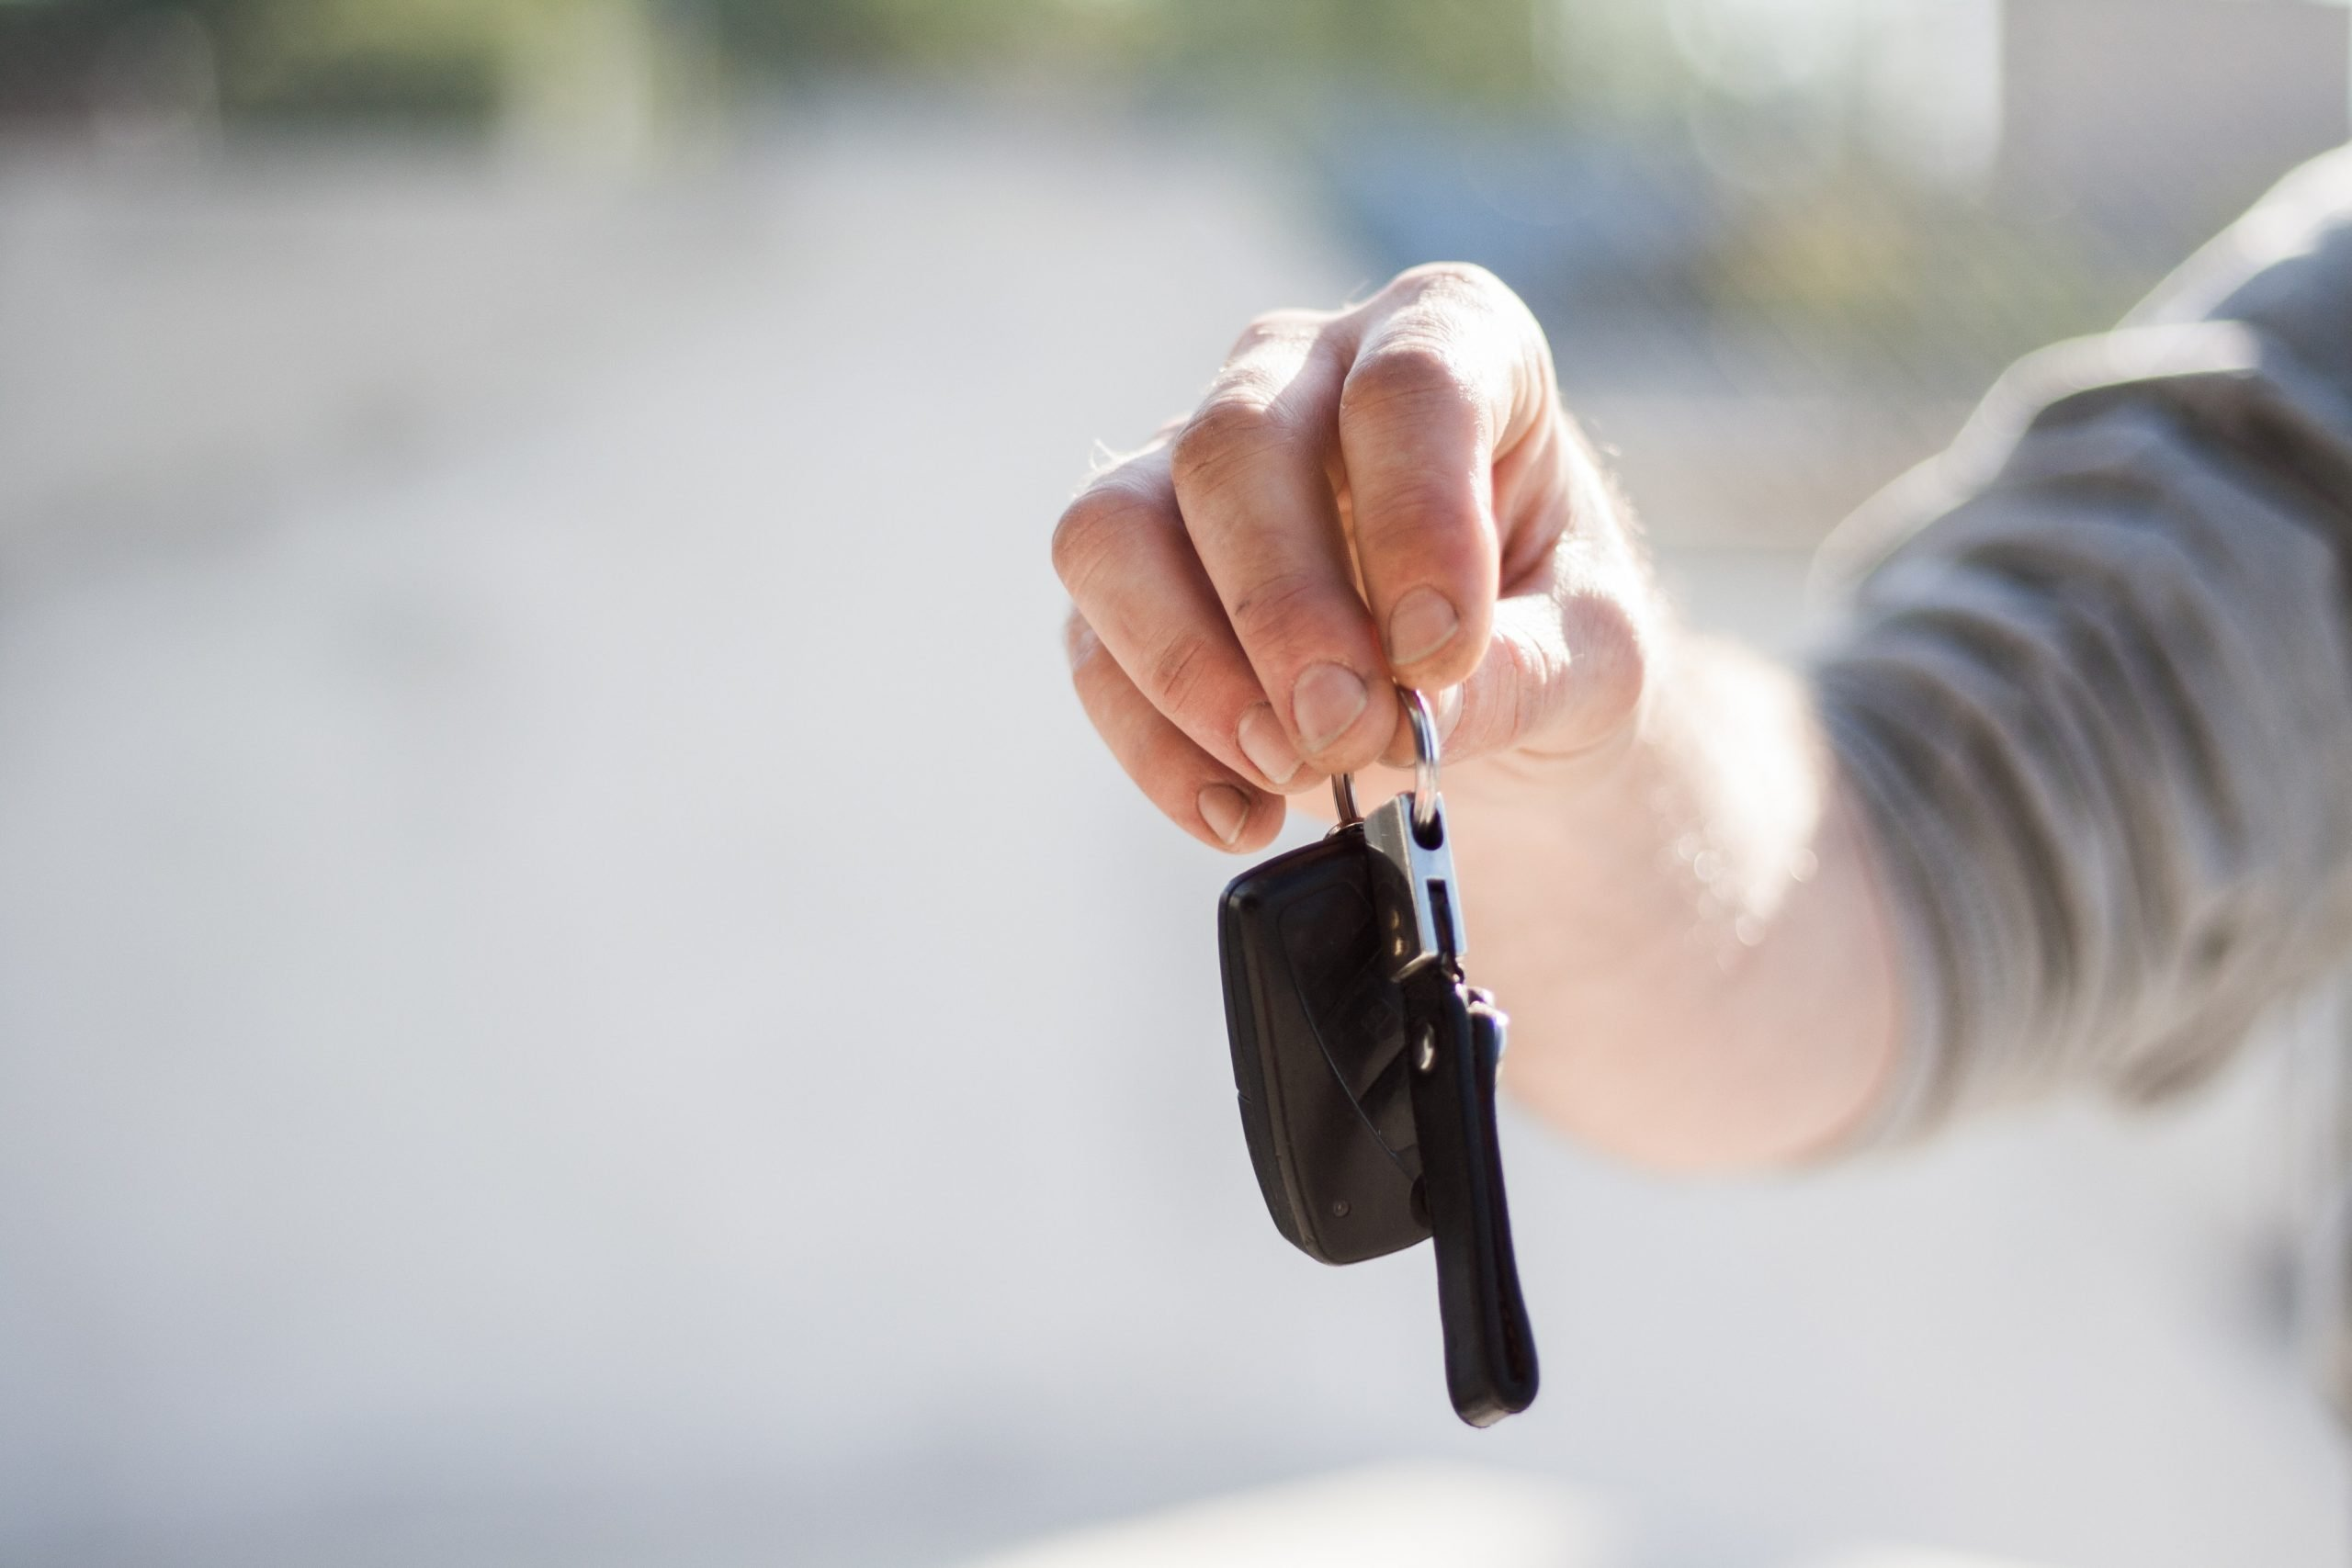 person giving car keys to someone else